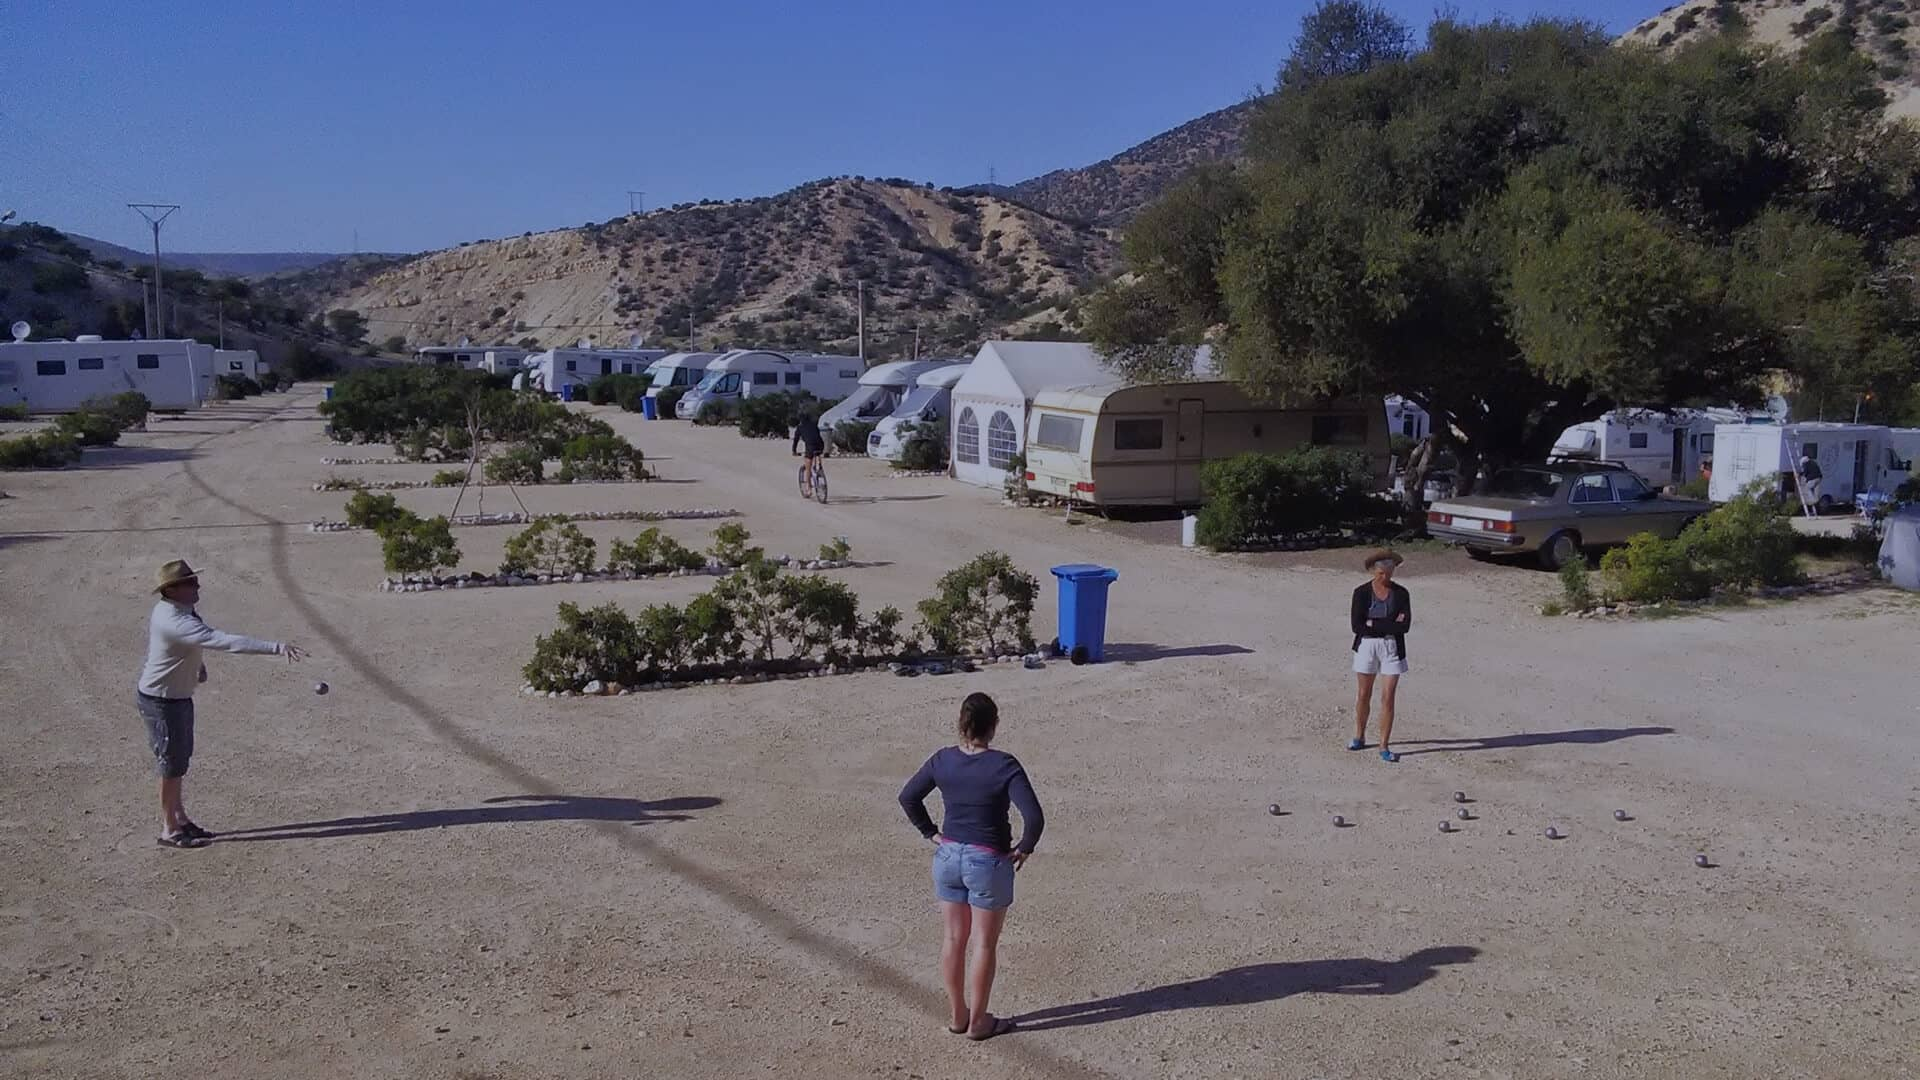 On the wonderful campsite in Aourir, Morocco